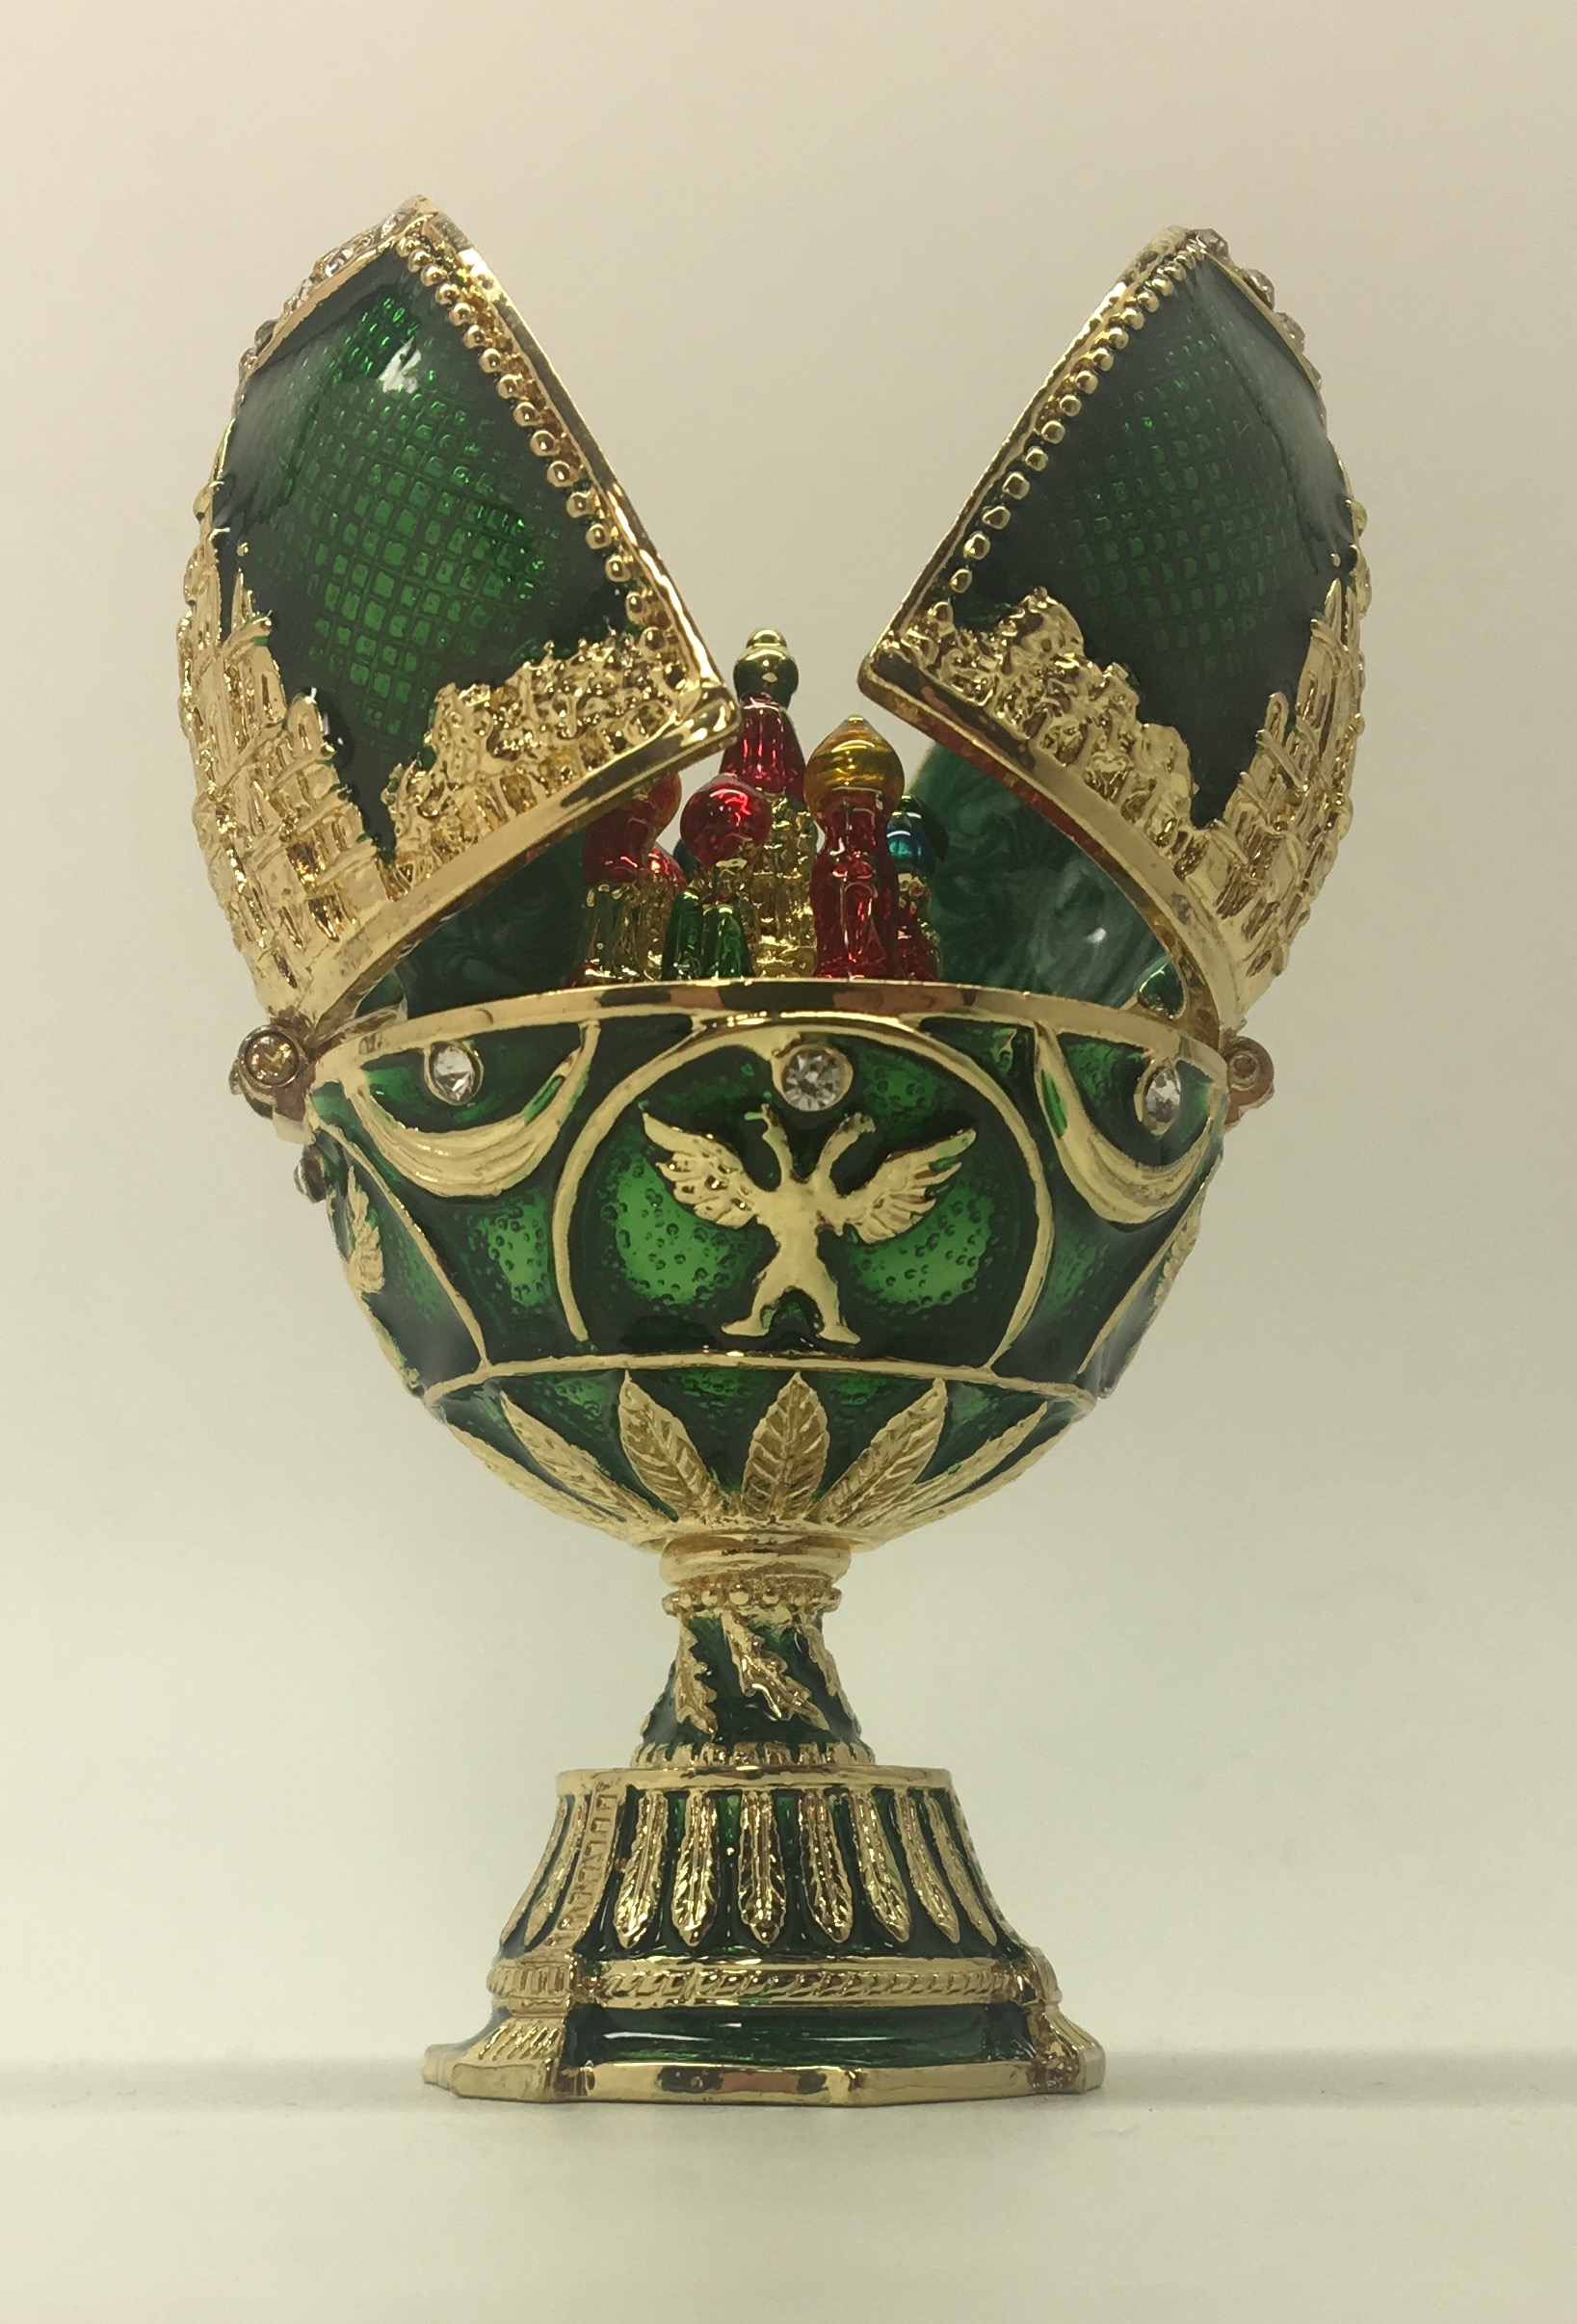 Moscow SHM Jewelery Egg with Snt Basil inside green color